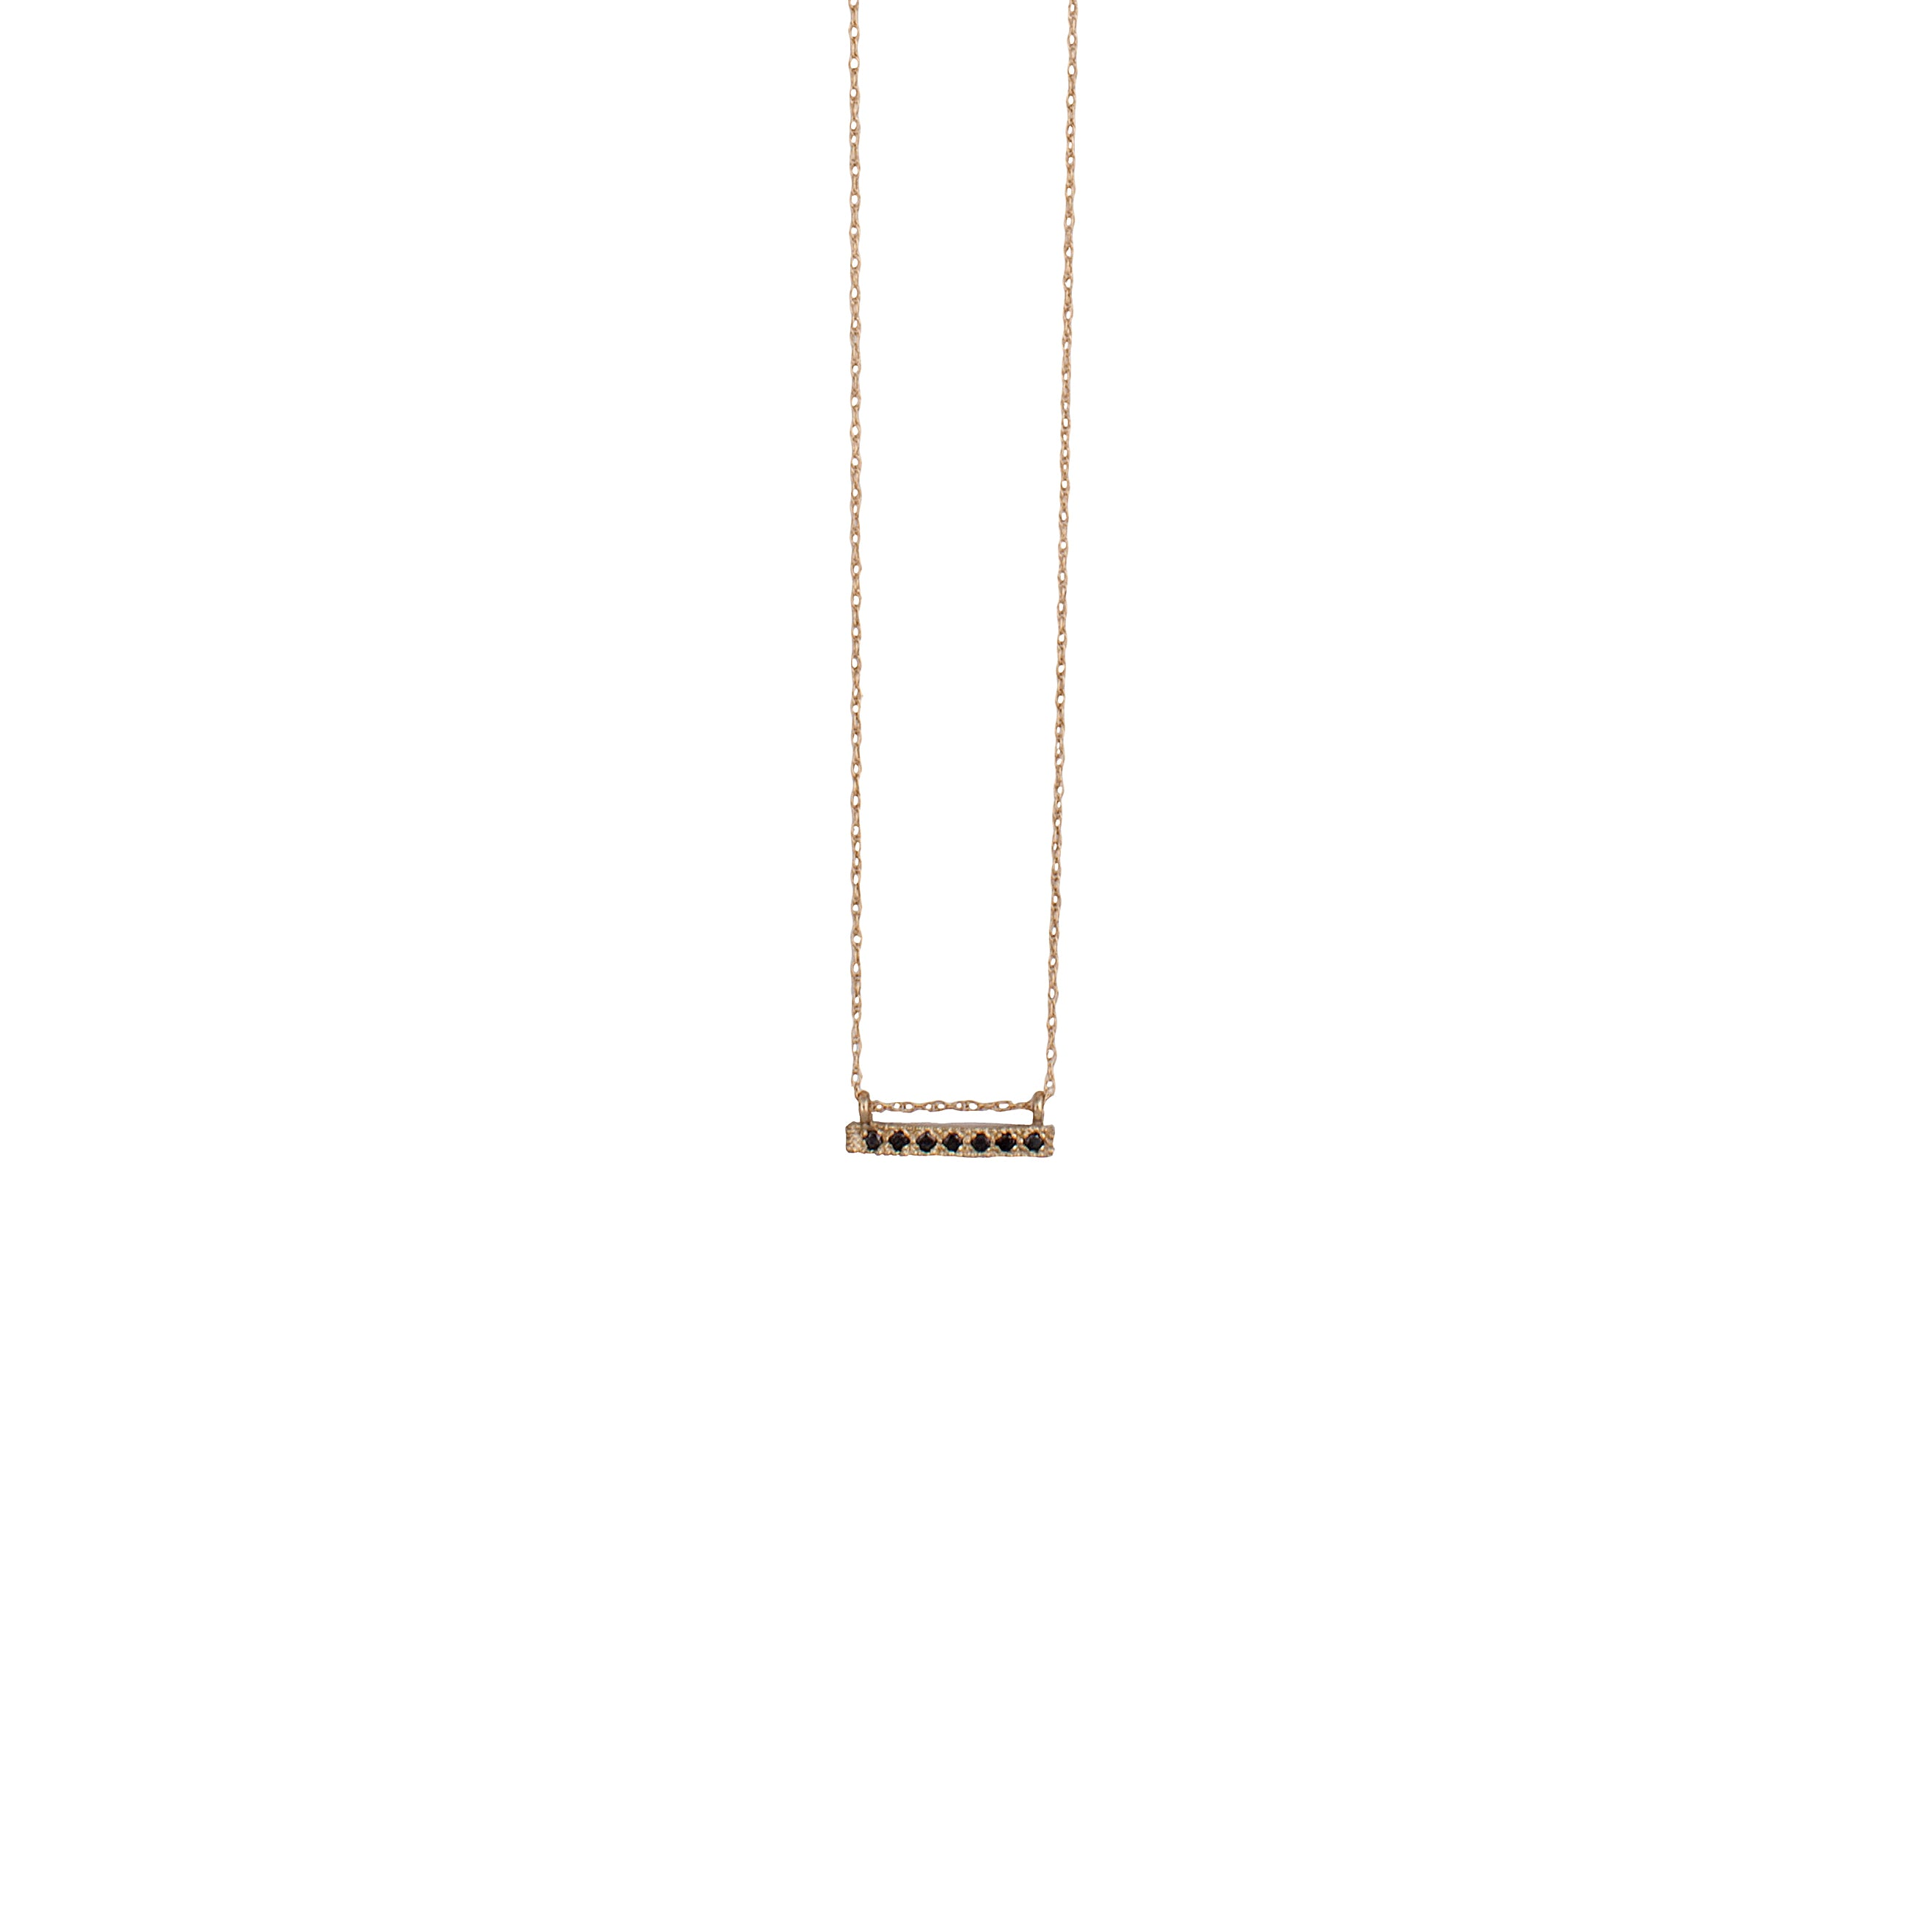 14K gold necklace with black diamonds pendant